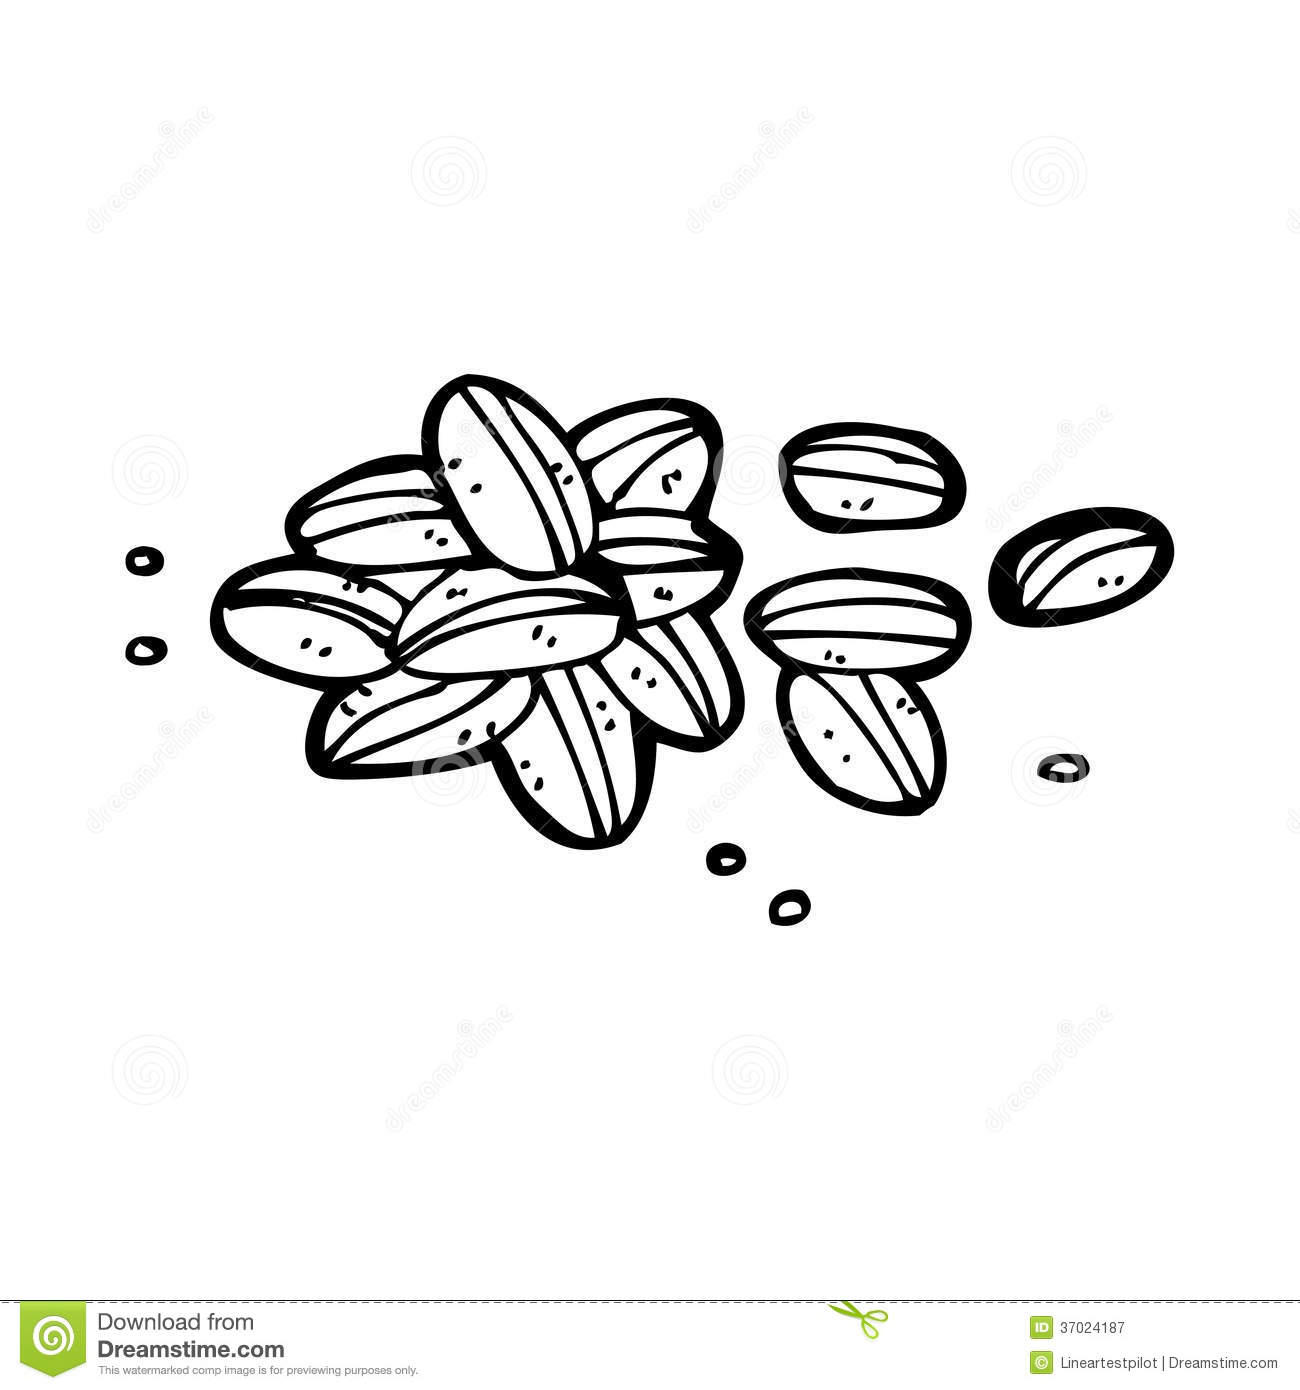 Seeds clipart black and white.